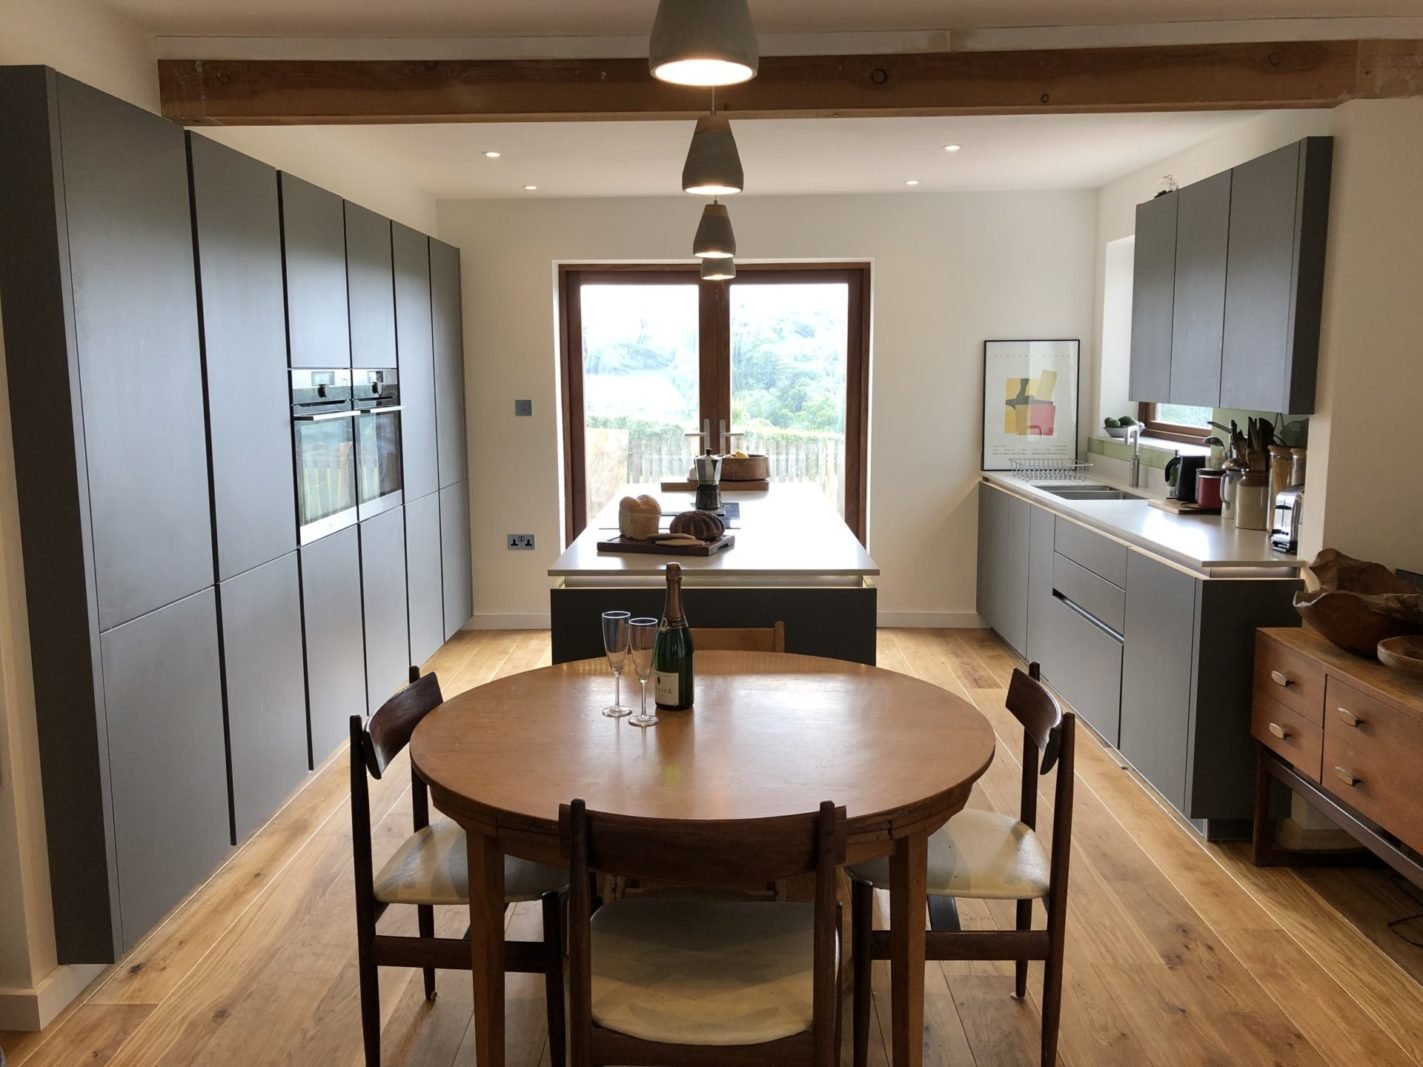 Holly Cottage residential project nears completion – Rud Sawers Architects, Devon